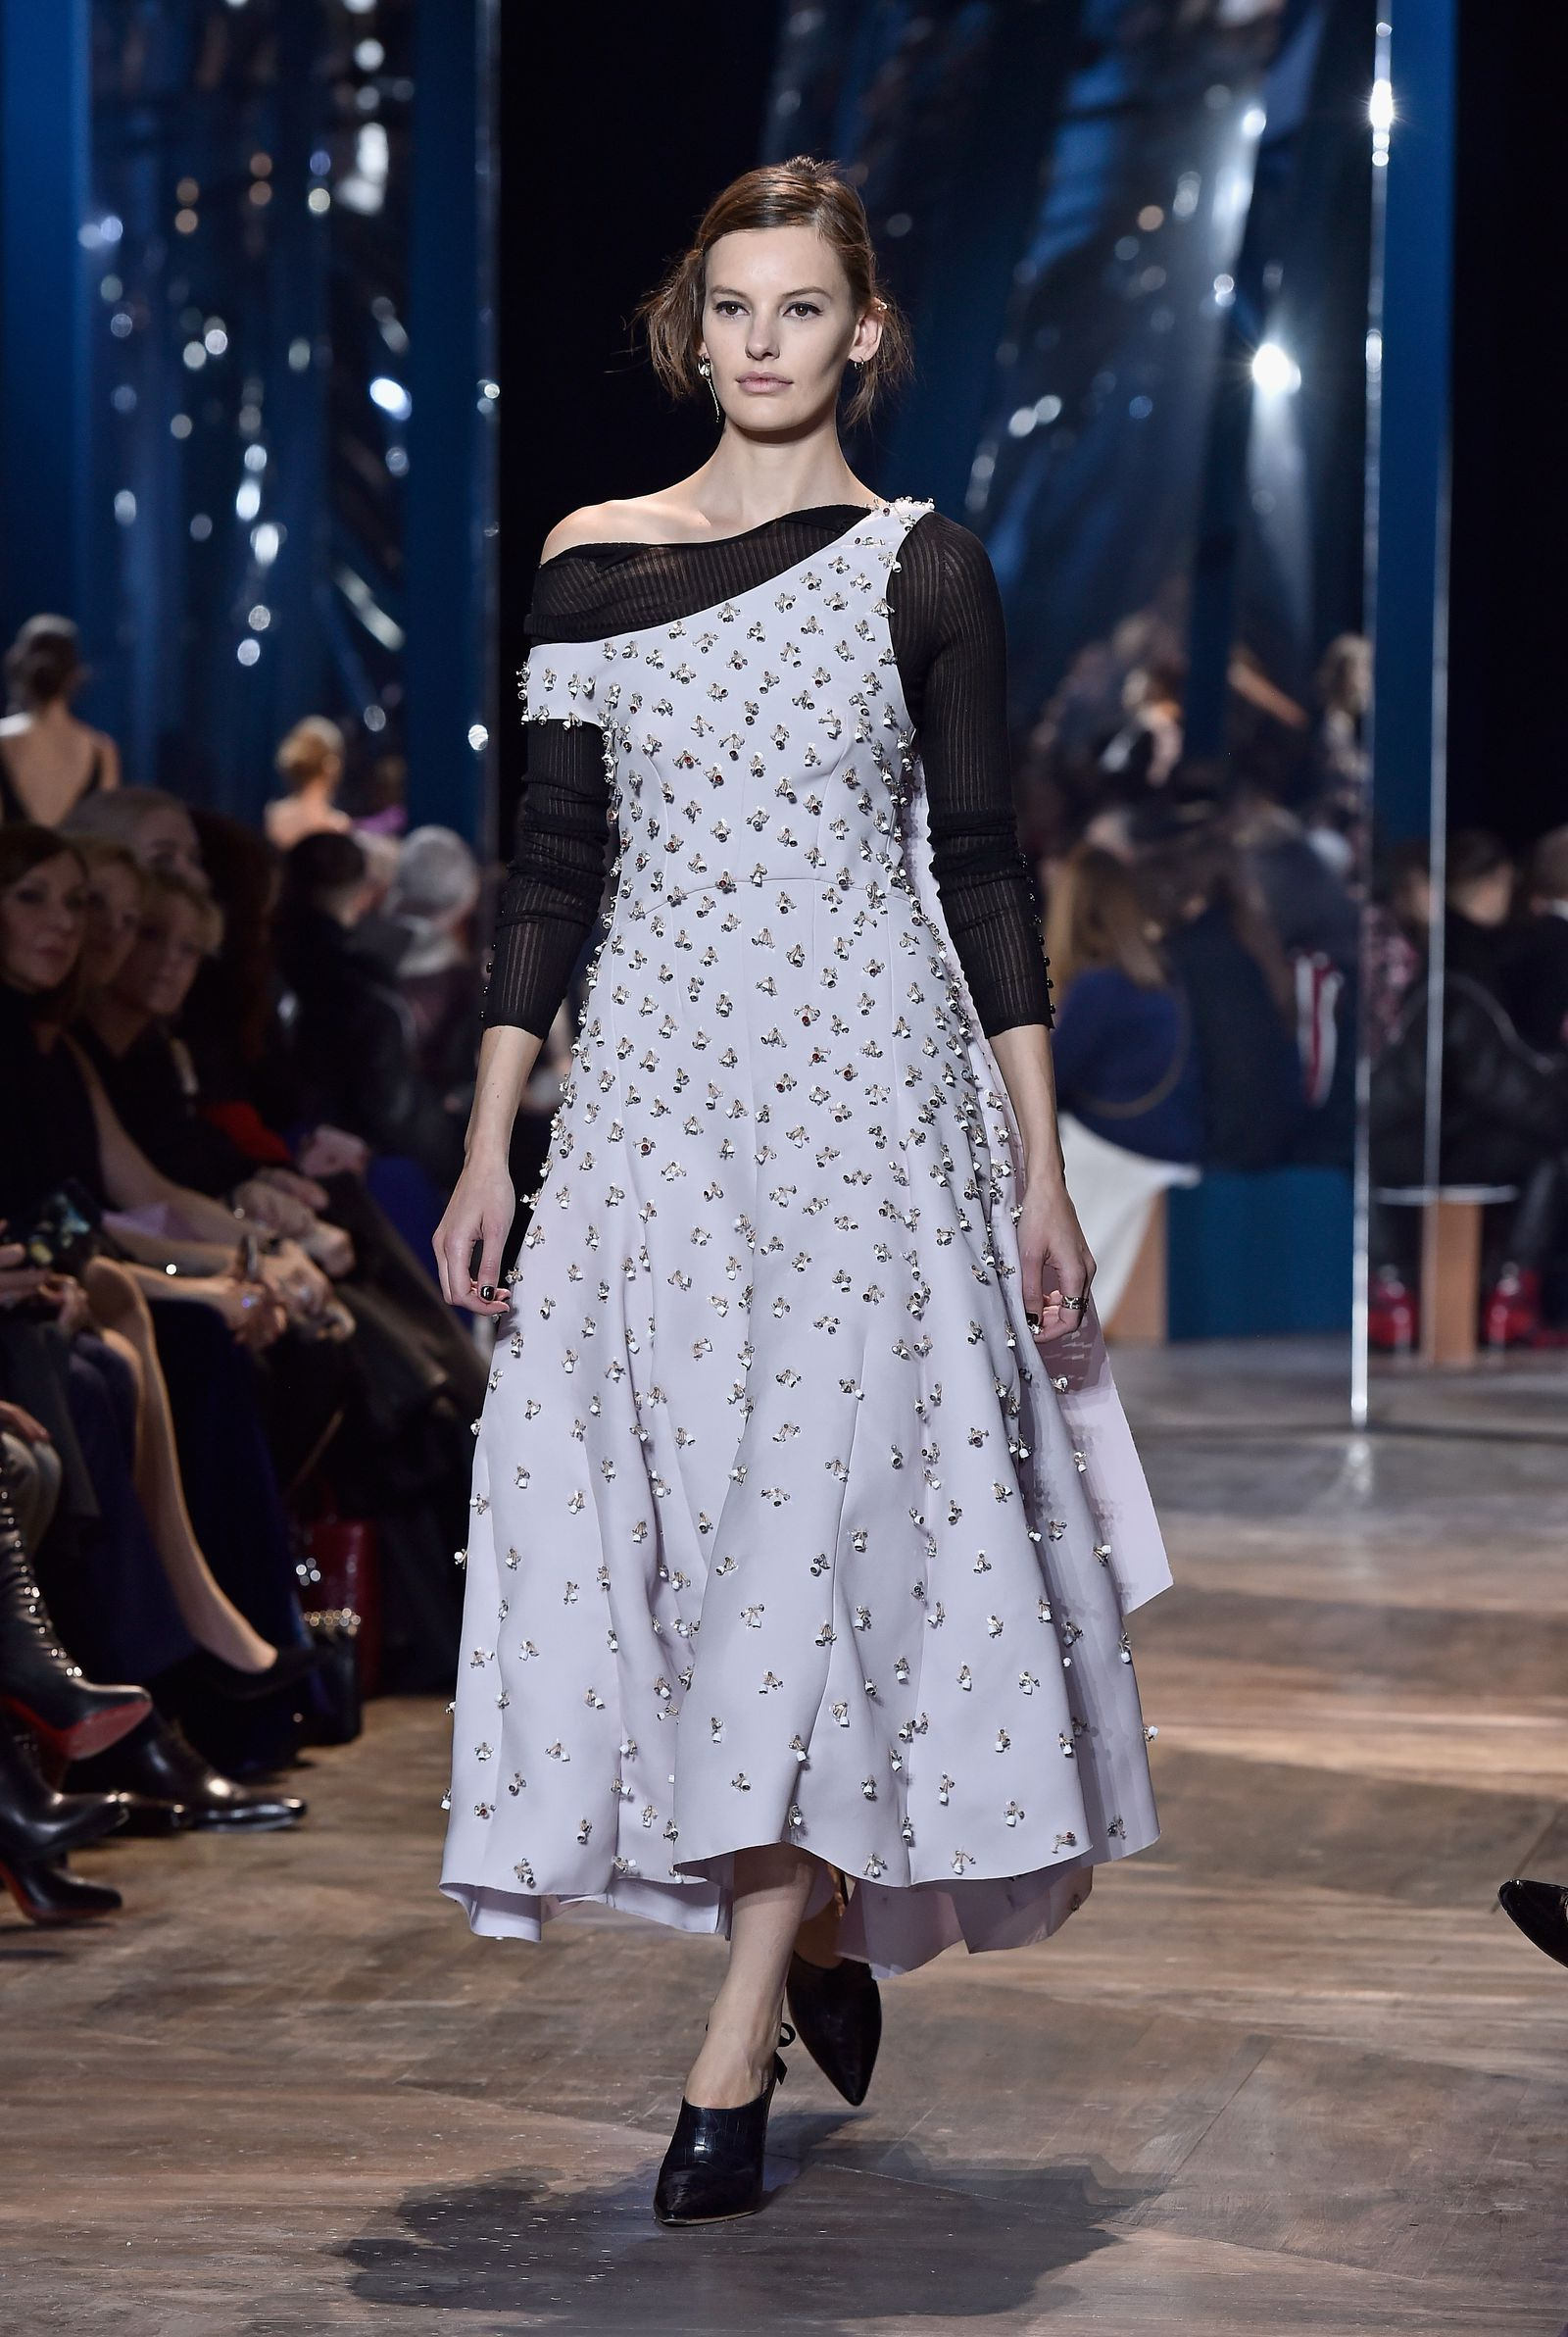 Dior wedding dresses  The Best Gowns From Paris Couture Week  wedding mob  Pinterest